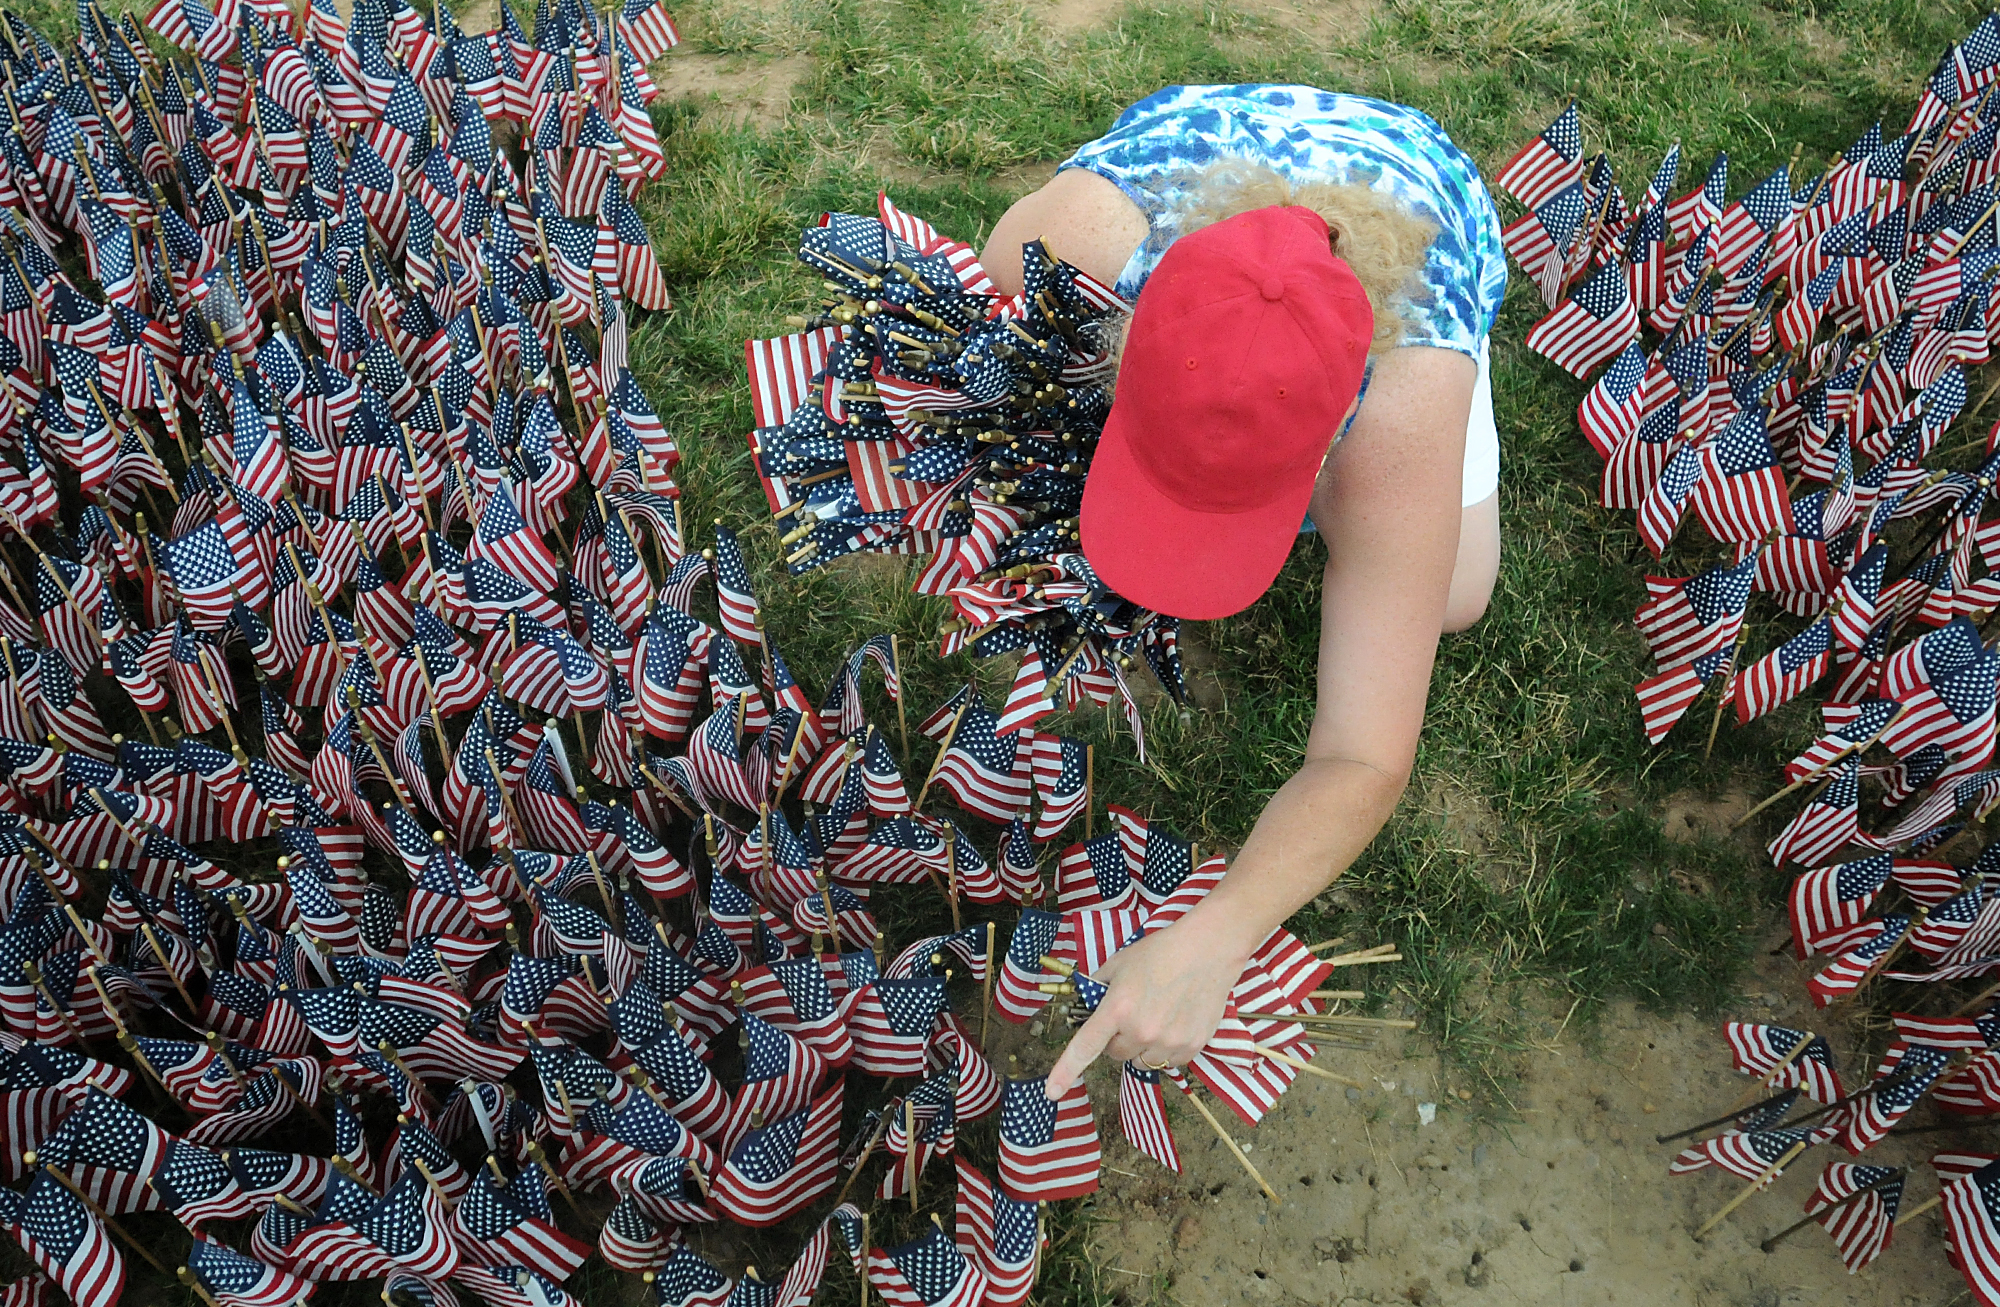 Donna Donohue, a friend of Treasurer Jesse Hill, unplants and collects flags following the Delaware Valley Vietnam Veterans 30th annual Donald W. Jones Flag Memorial for Flag Day at Falls Township Community Park on Sunday, June 14, 2015. 65,000 flags are placed in the ground for the memorial, which represents each American killed or Missing In Action during the Vietnam War.